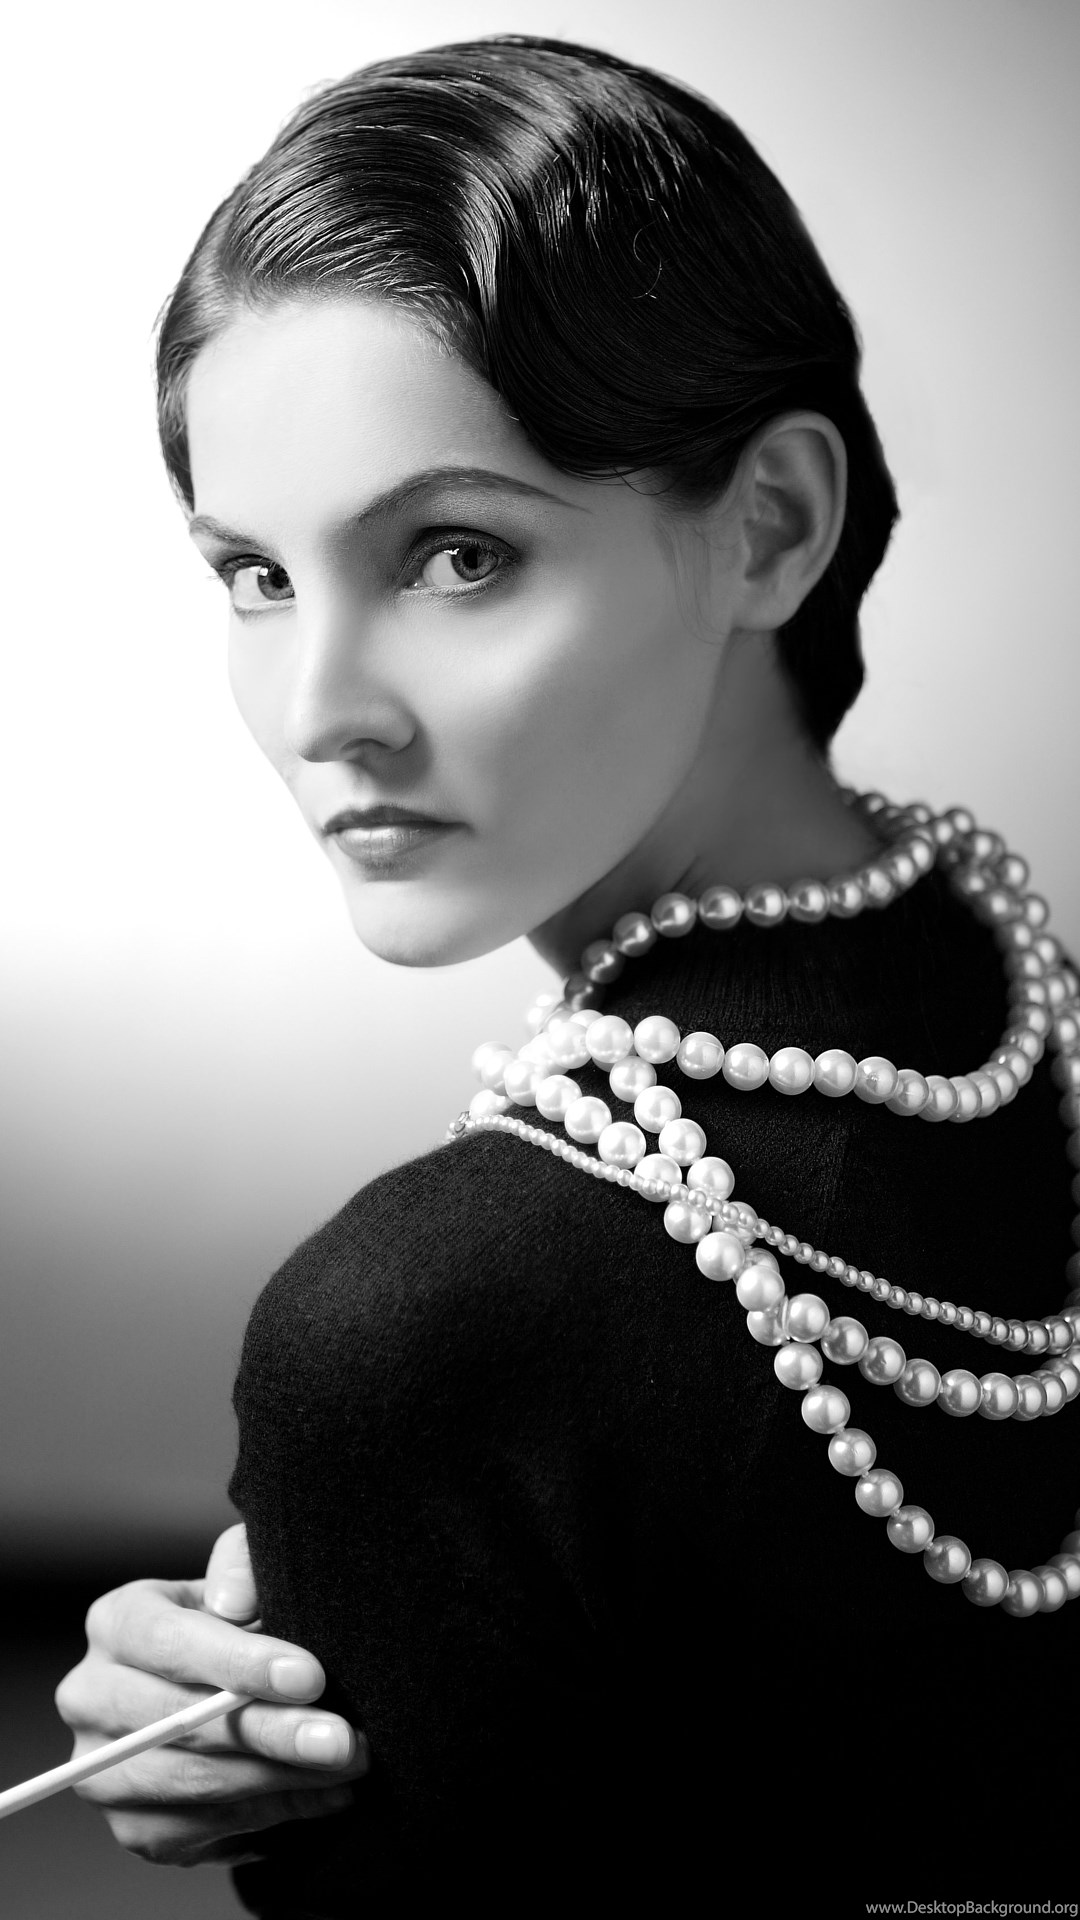 15 quality coco chanel wallpapers celebrity desktop - Coco chanel desktop wallpaper ...